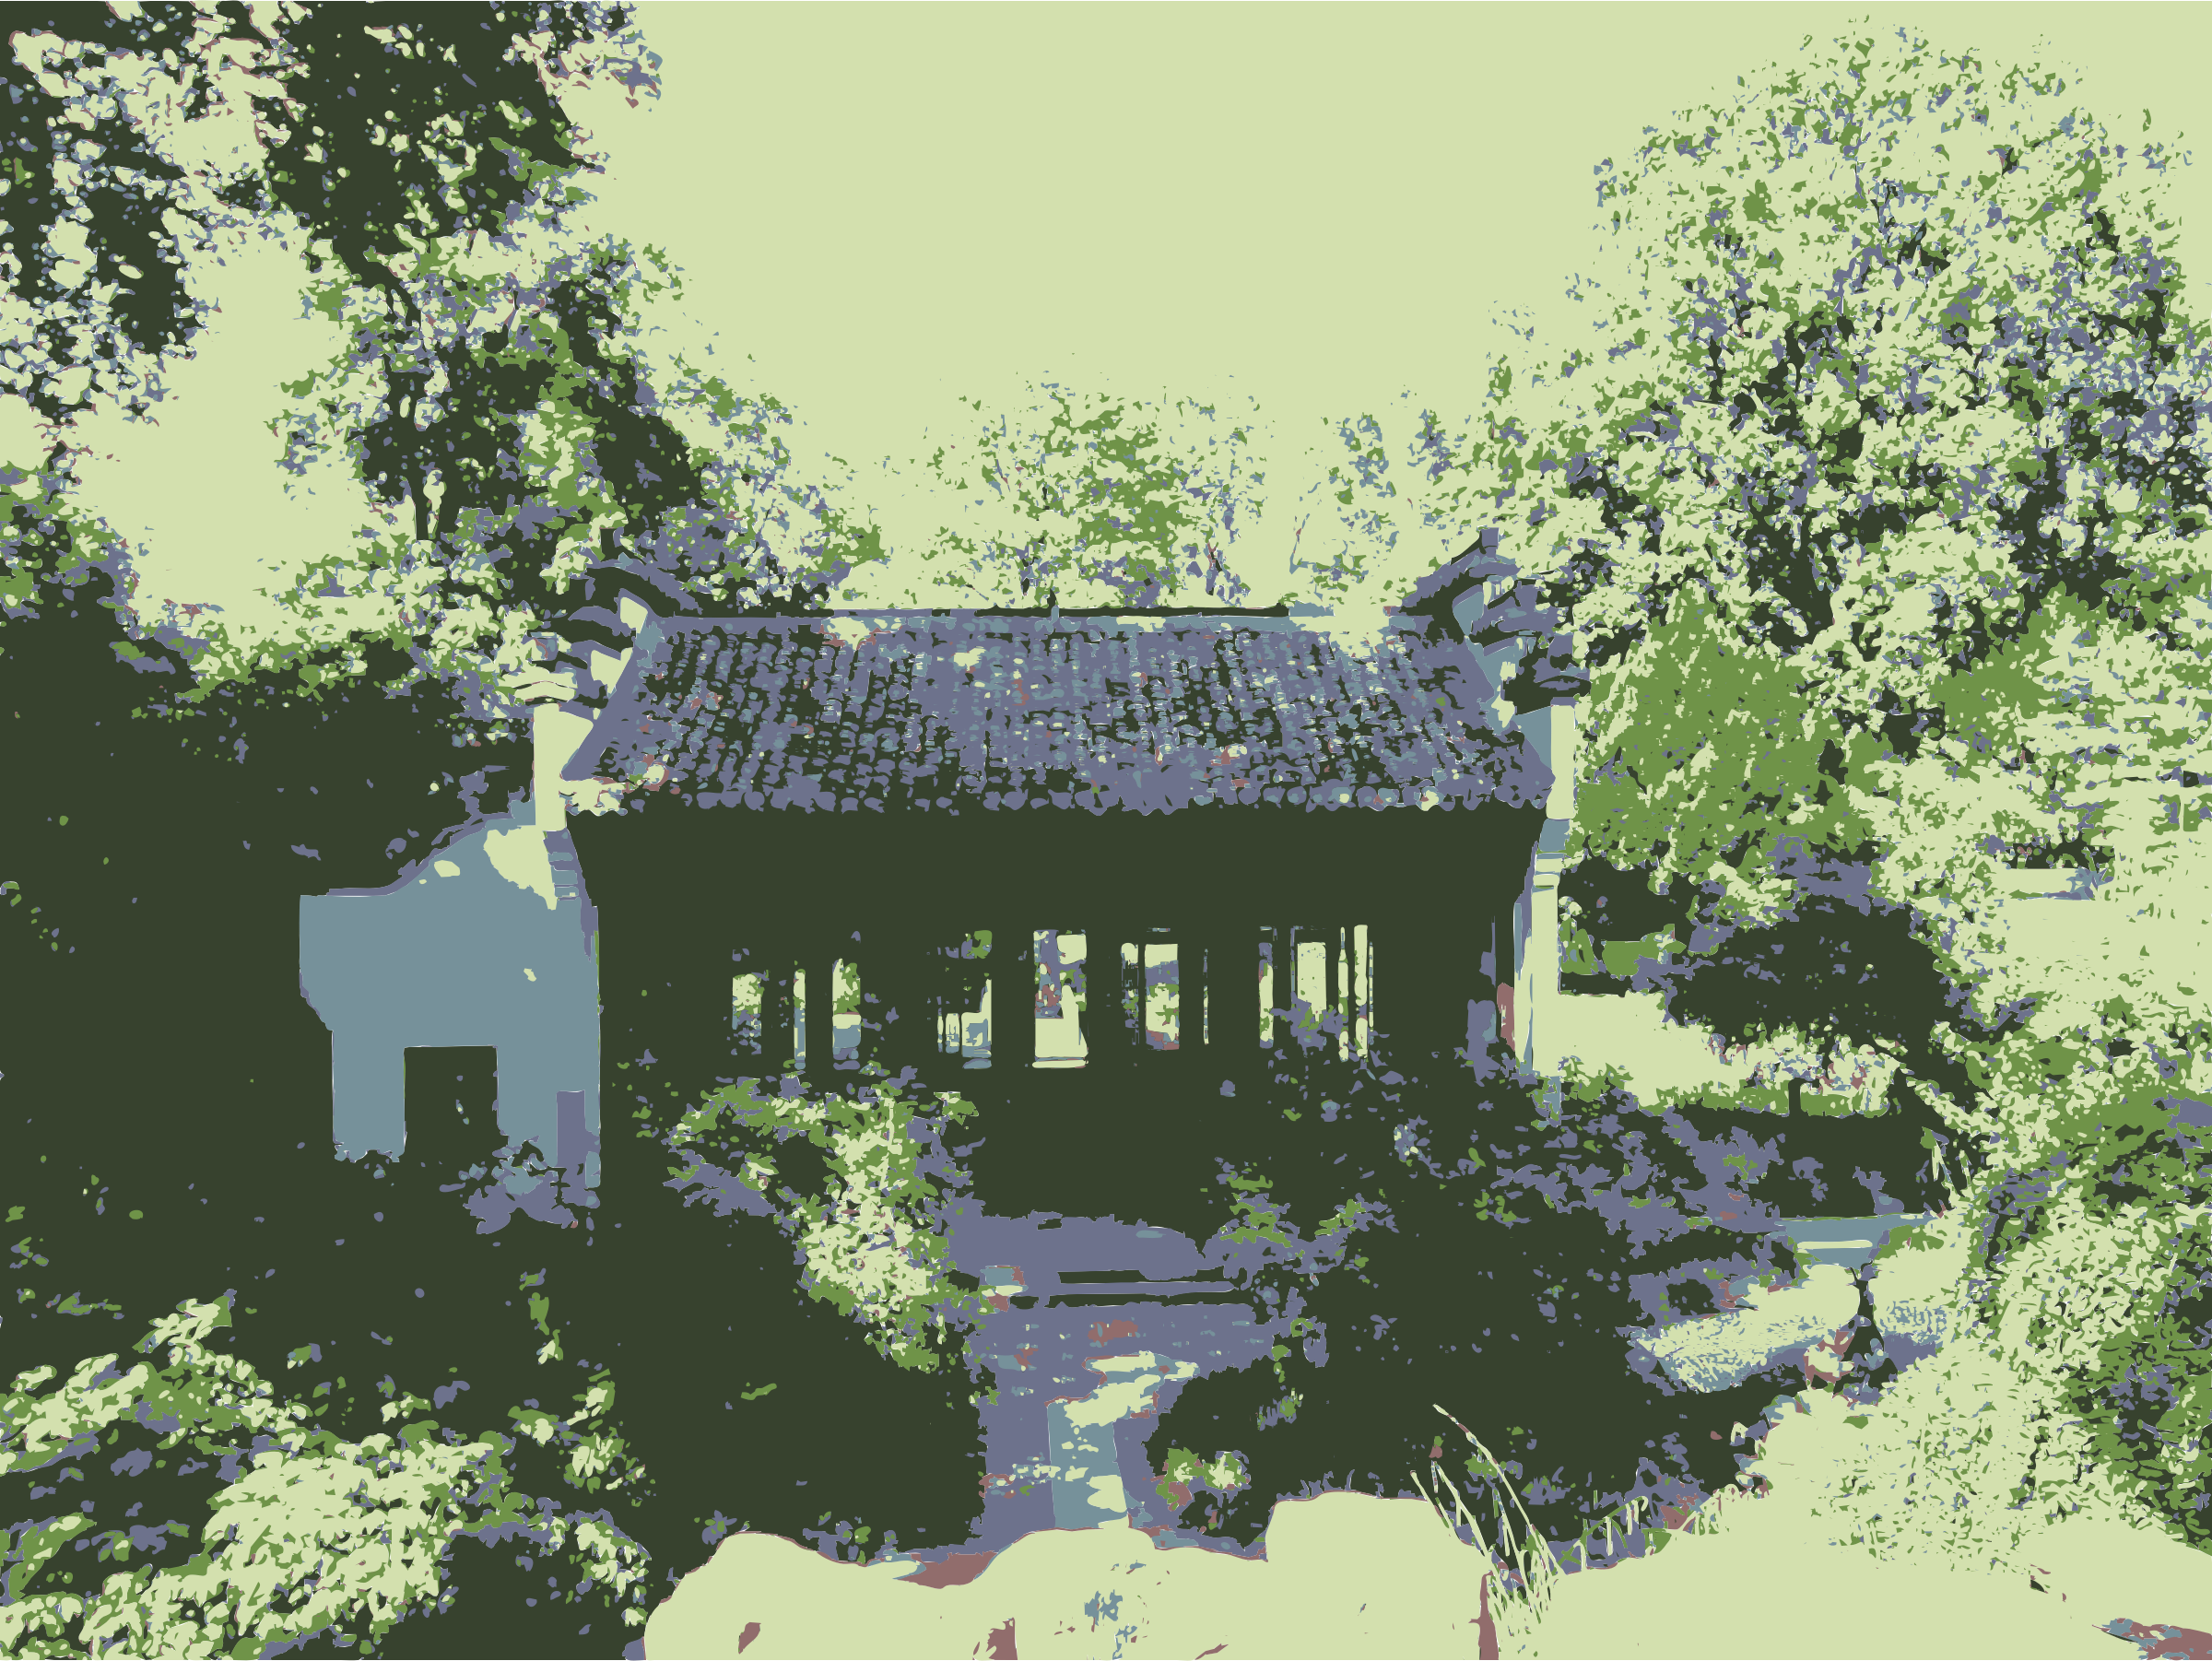 Chinese Garden I by martinaledermann